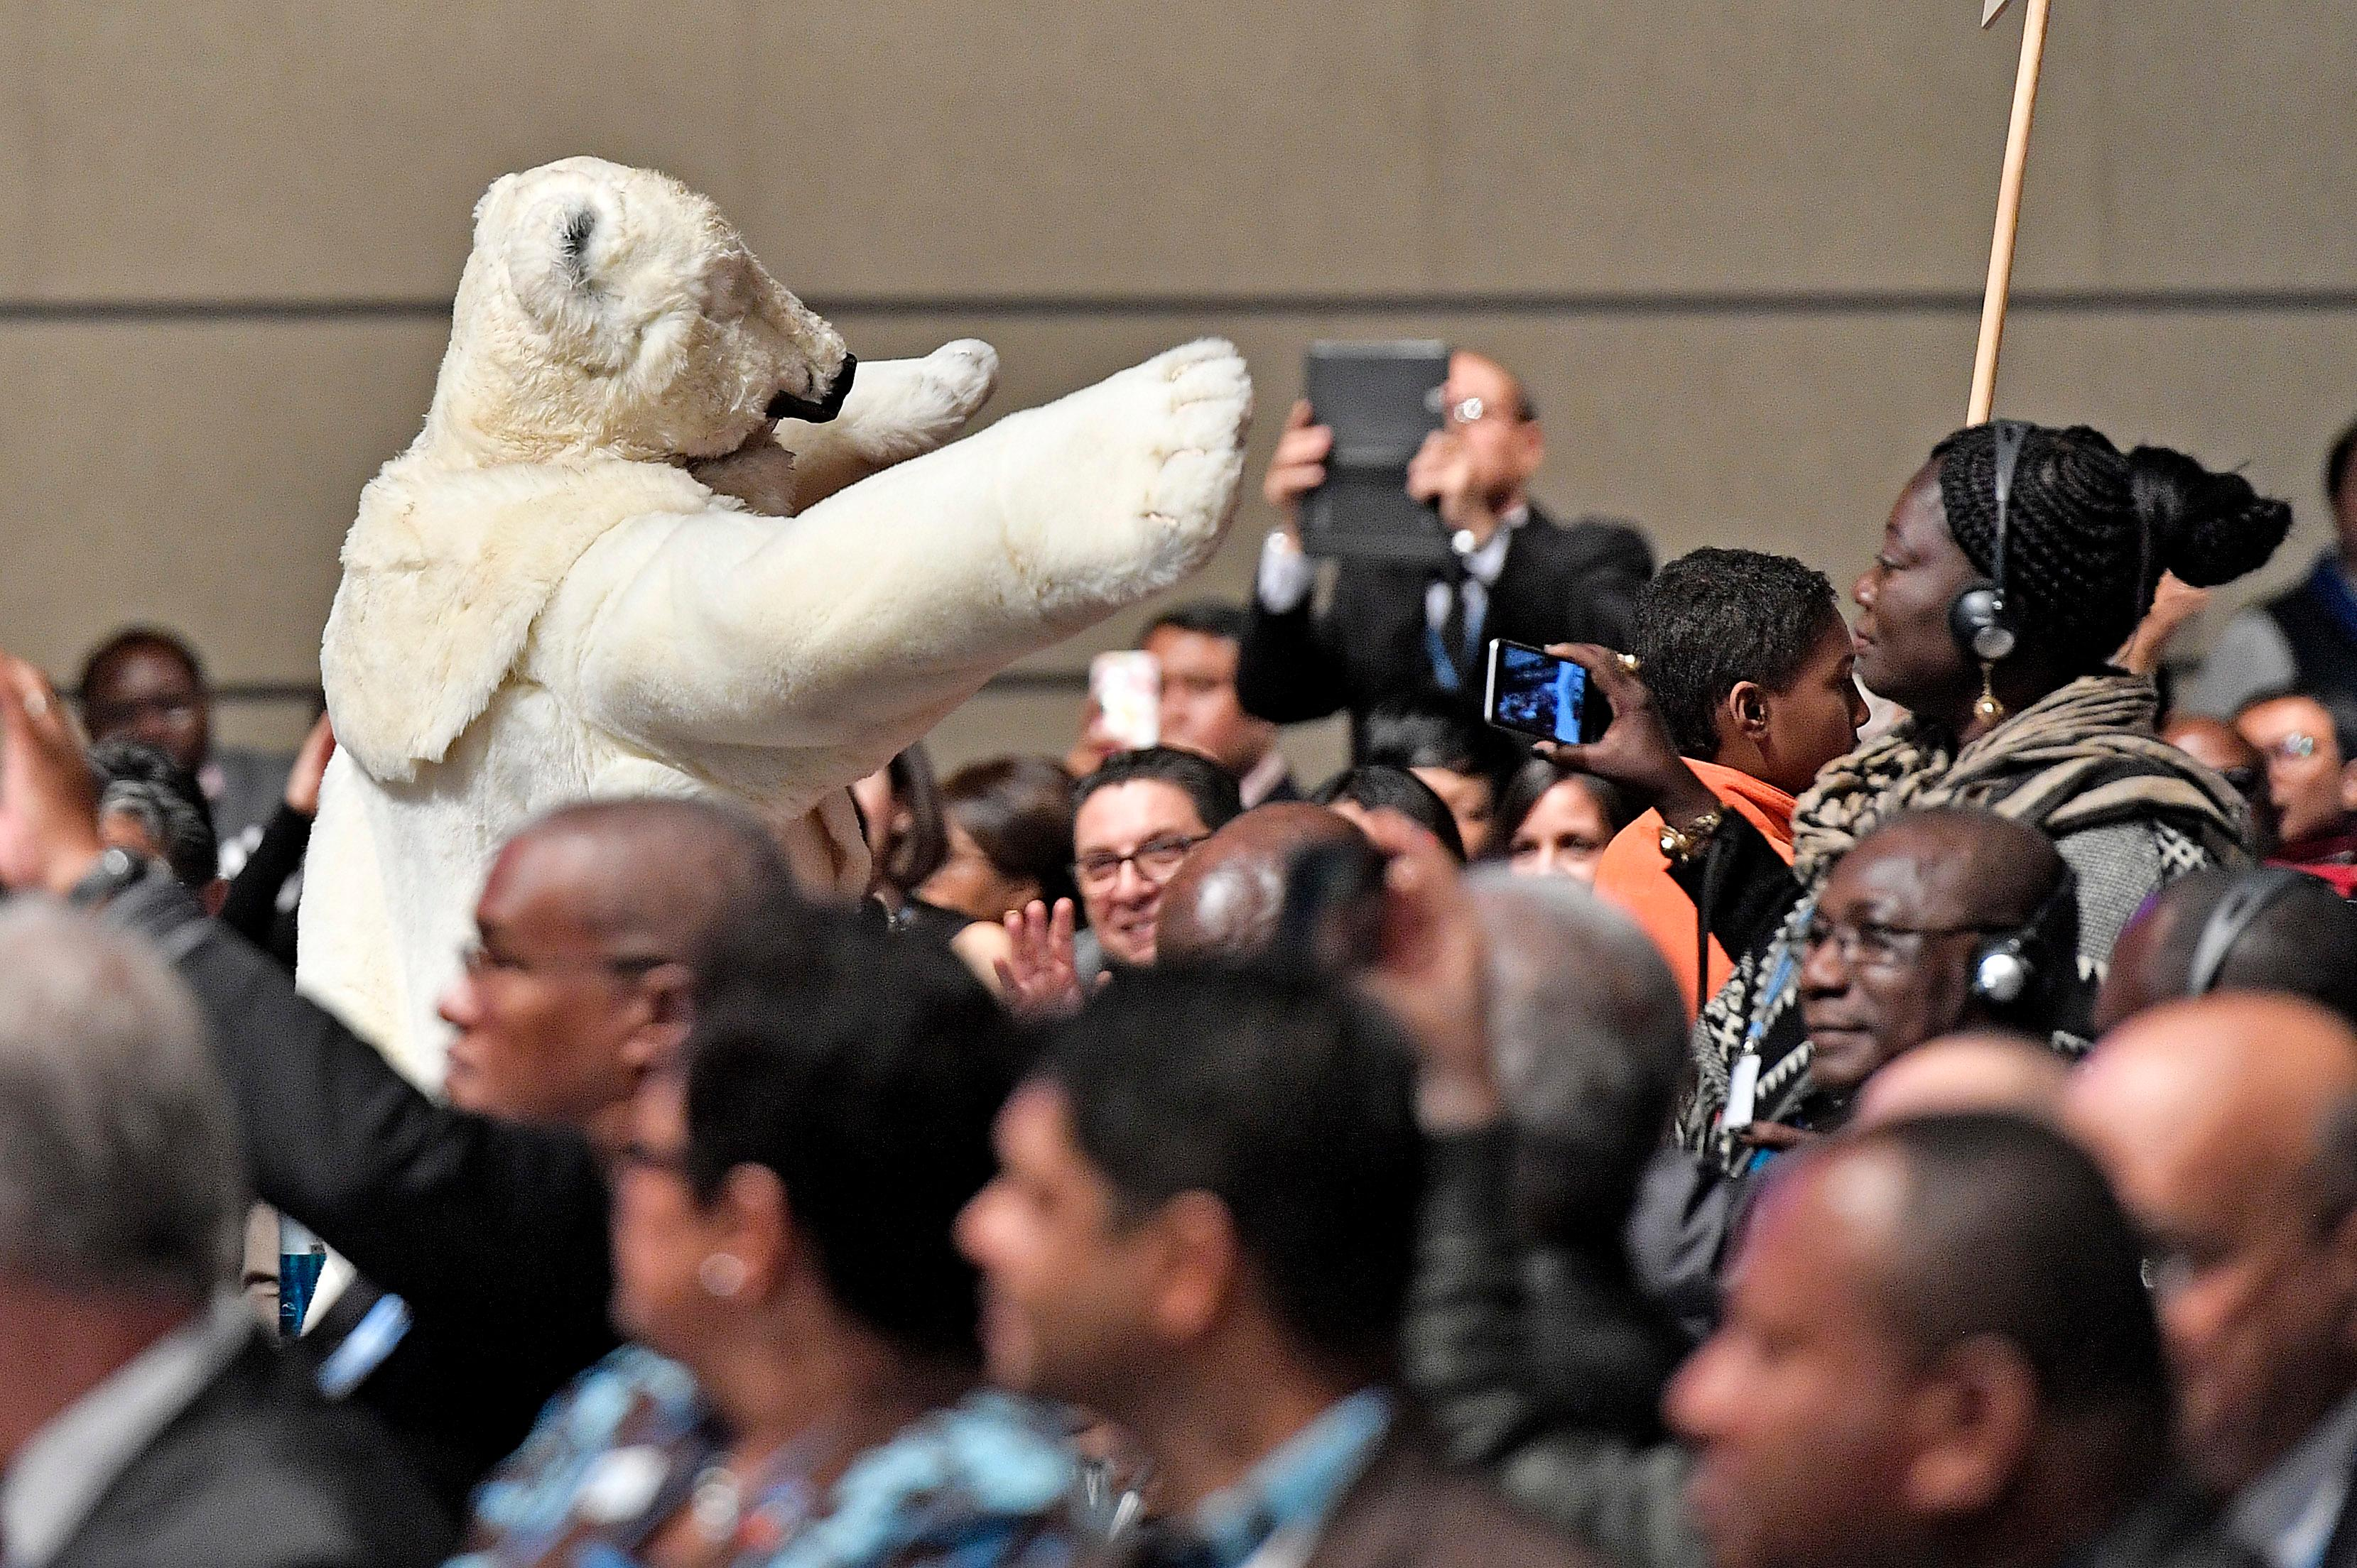 A man in a polar bear costume walks between the delegates during the opening of the COP 23 Fiji UN Climate Change Conference in Bonn, Germany, Monday, Nov. 6, 2017. (AP Photo/Martin Meissner)<p></p>